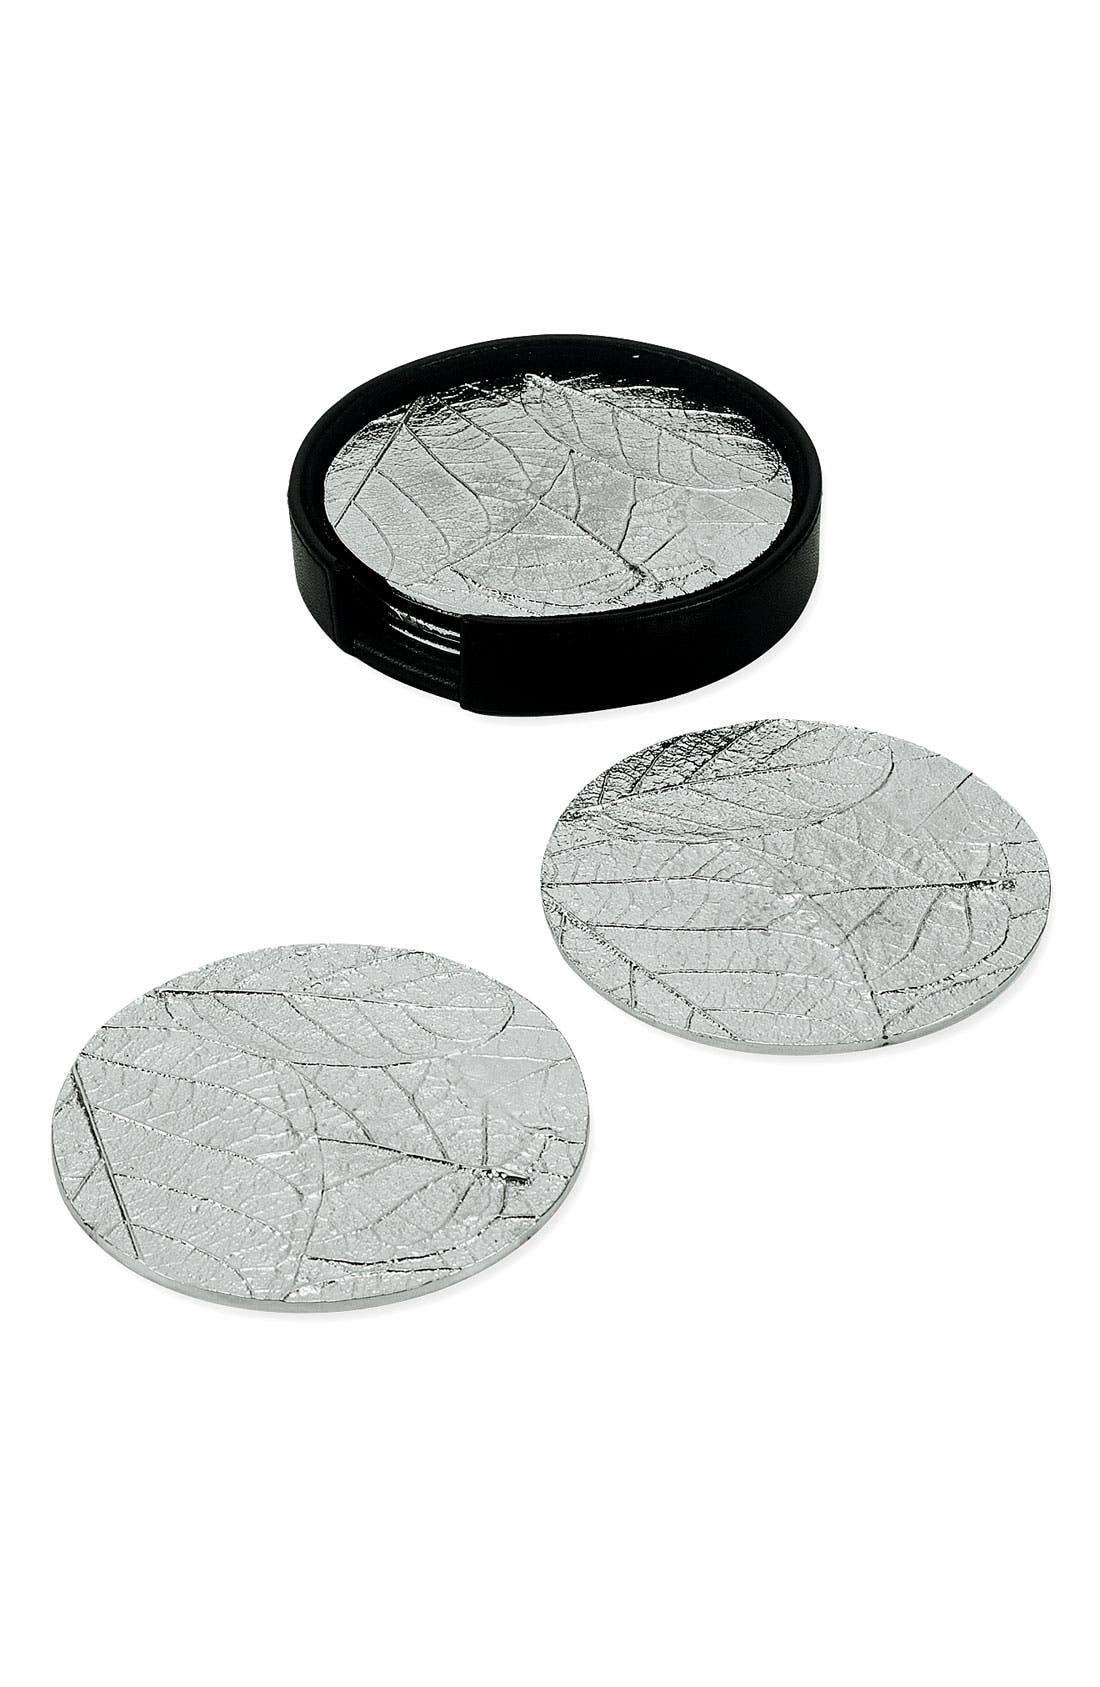 Alternate Image 1 Selected - Michael Aram 'Forest Leaf' Coasters (Set of 6)